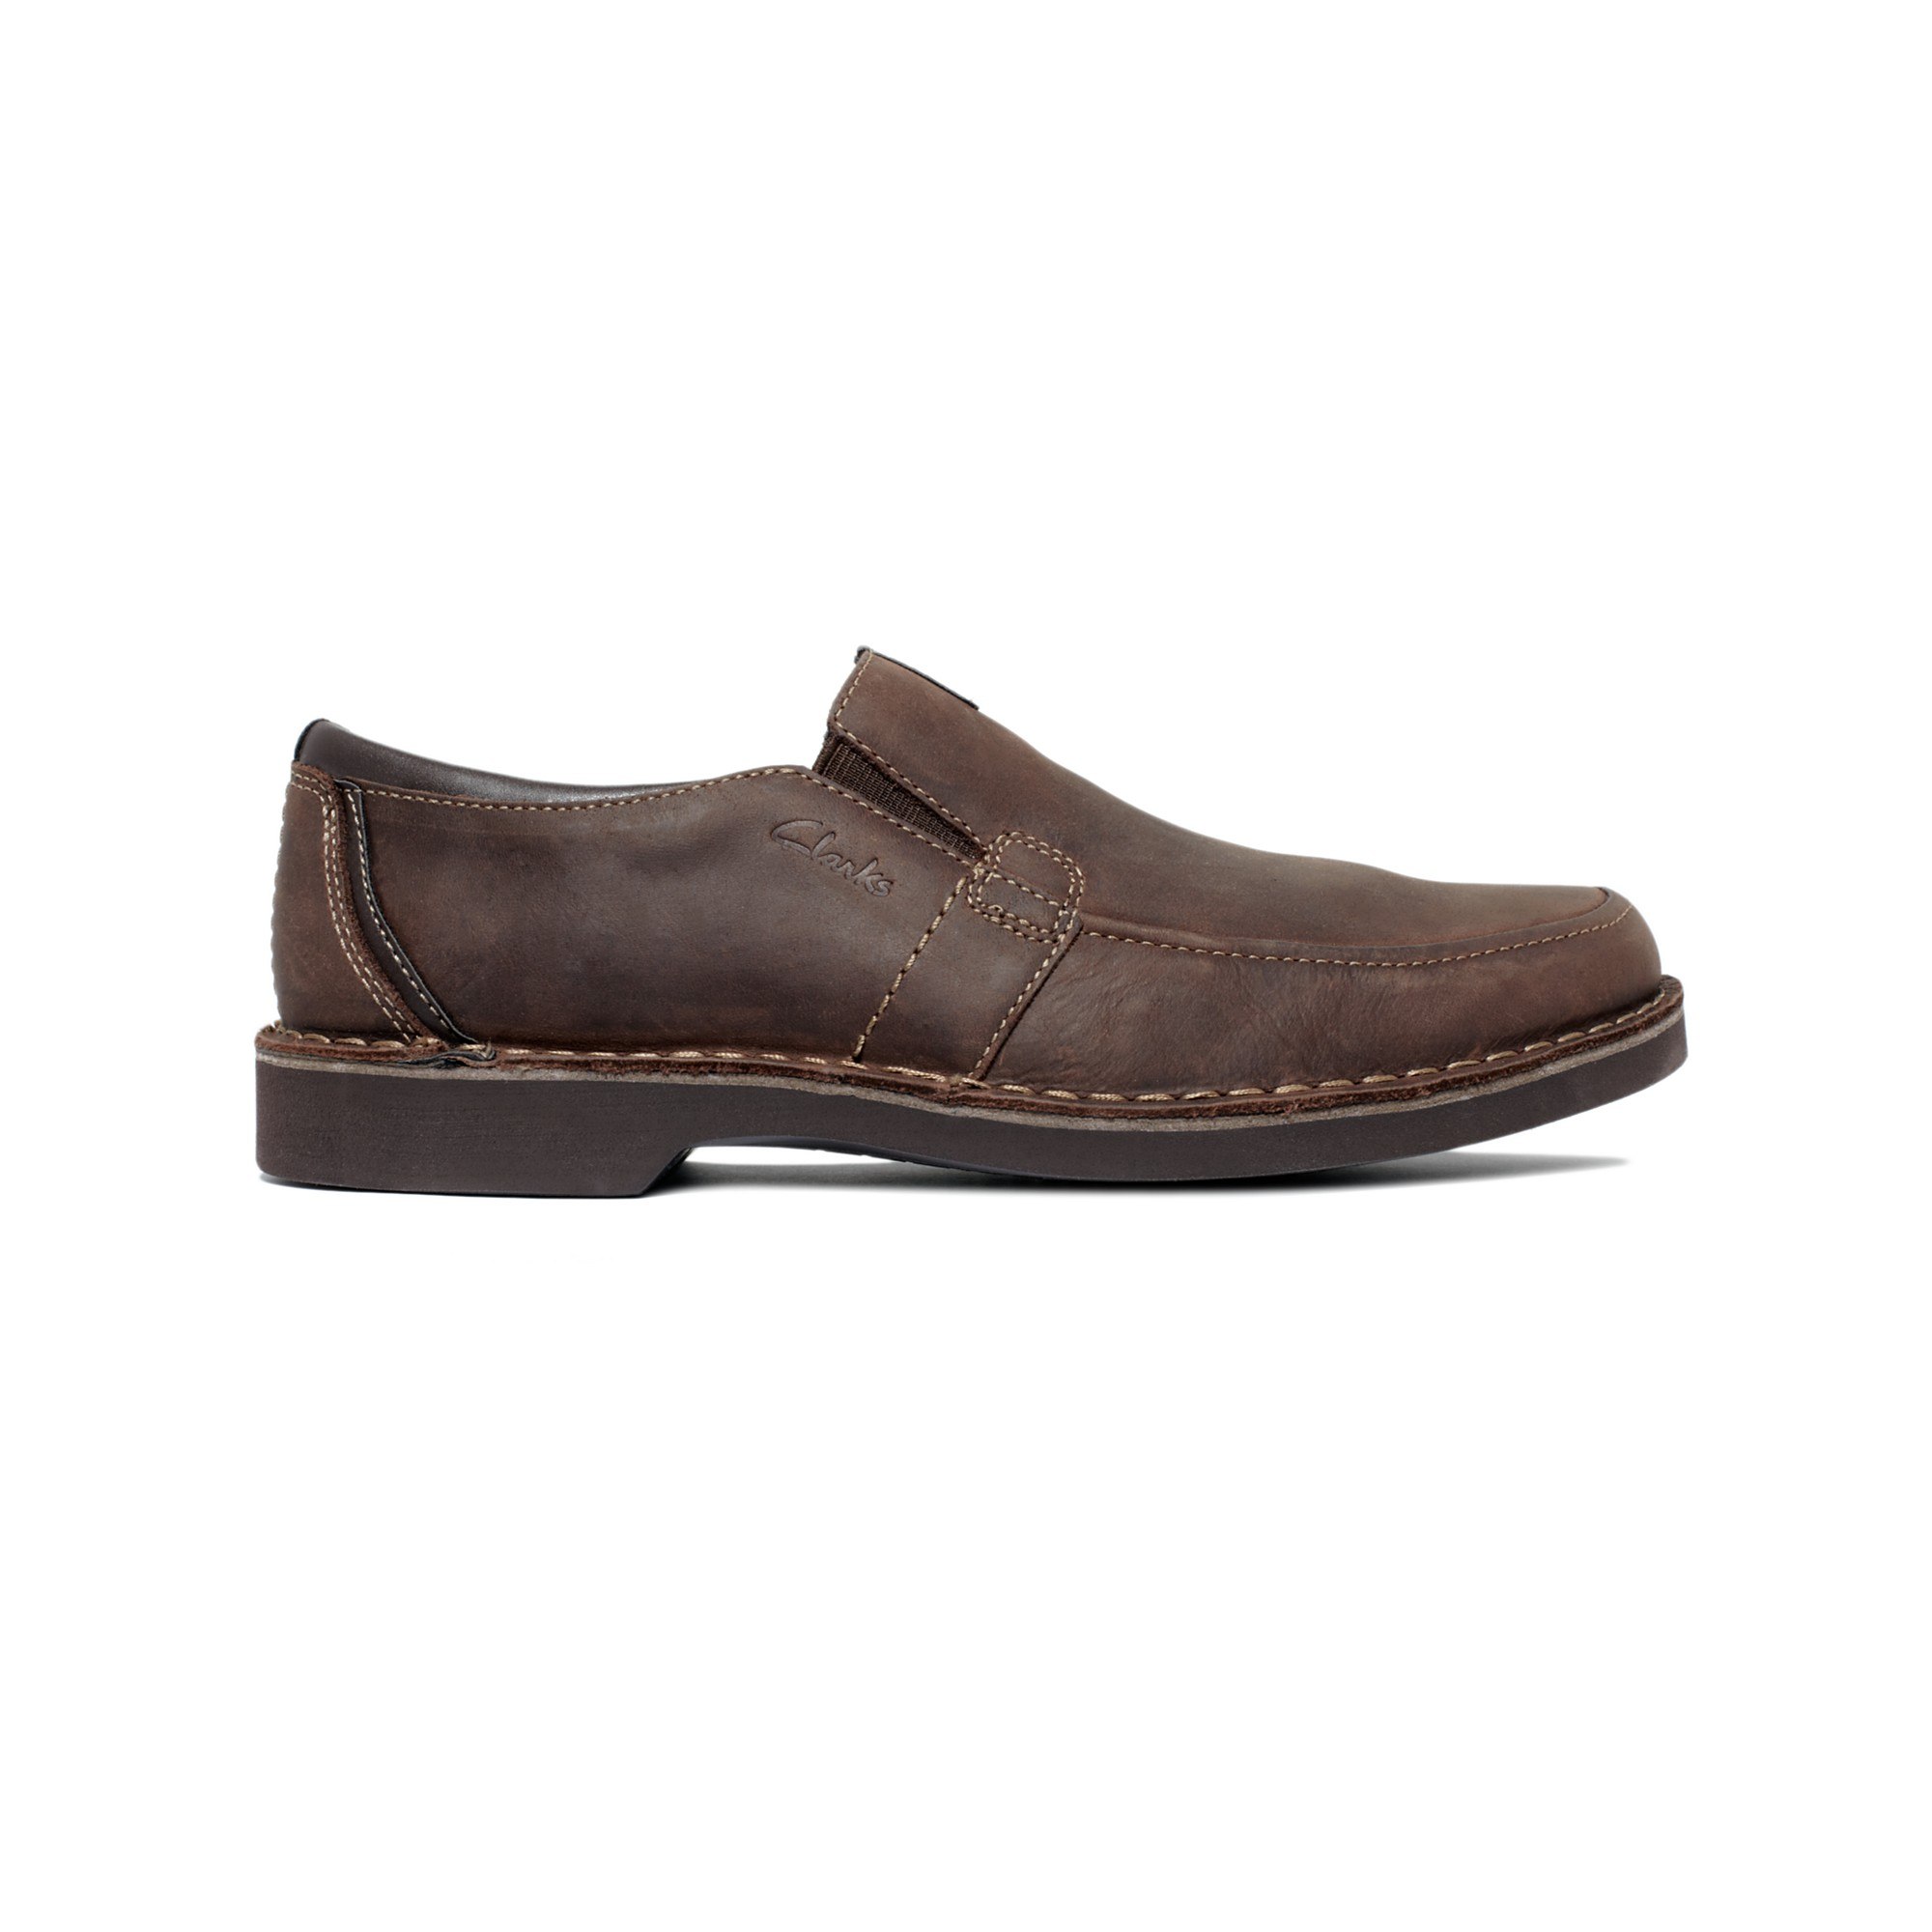 Clarks Shoes Doby